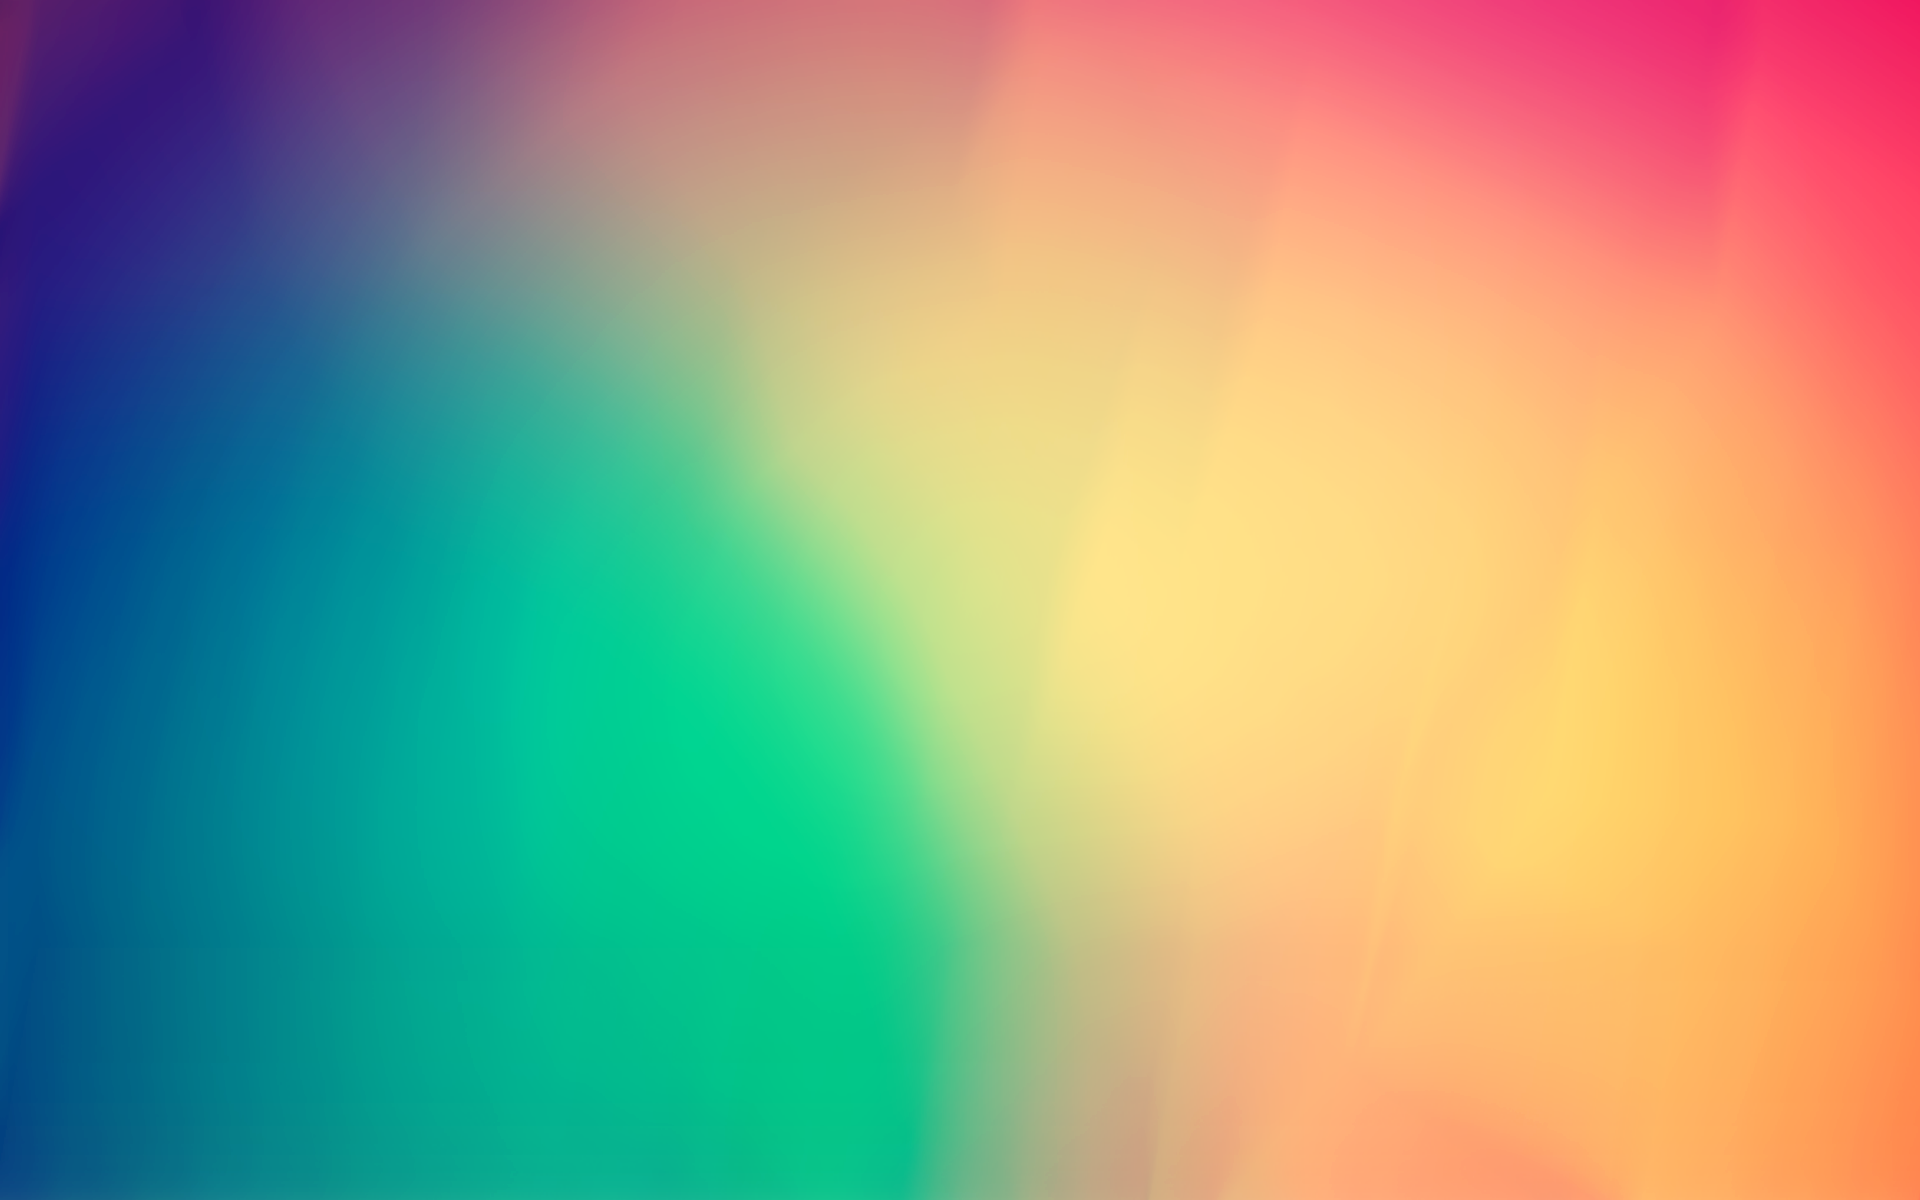 15 excellent hd gradient wallpapers